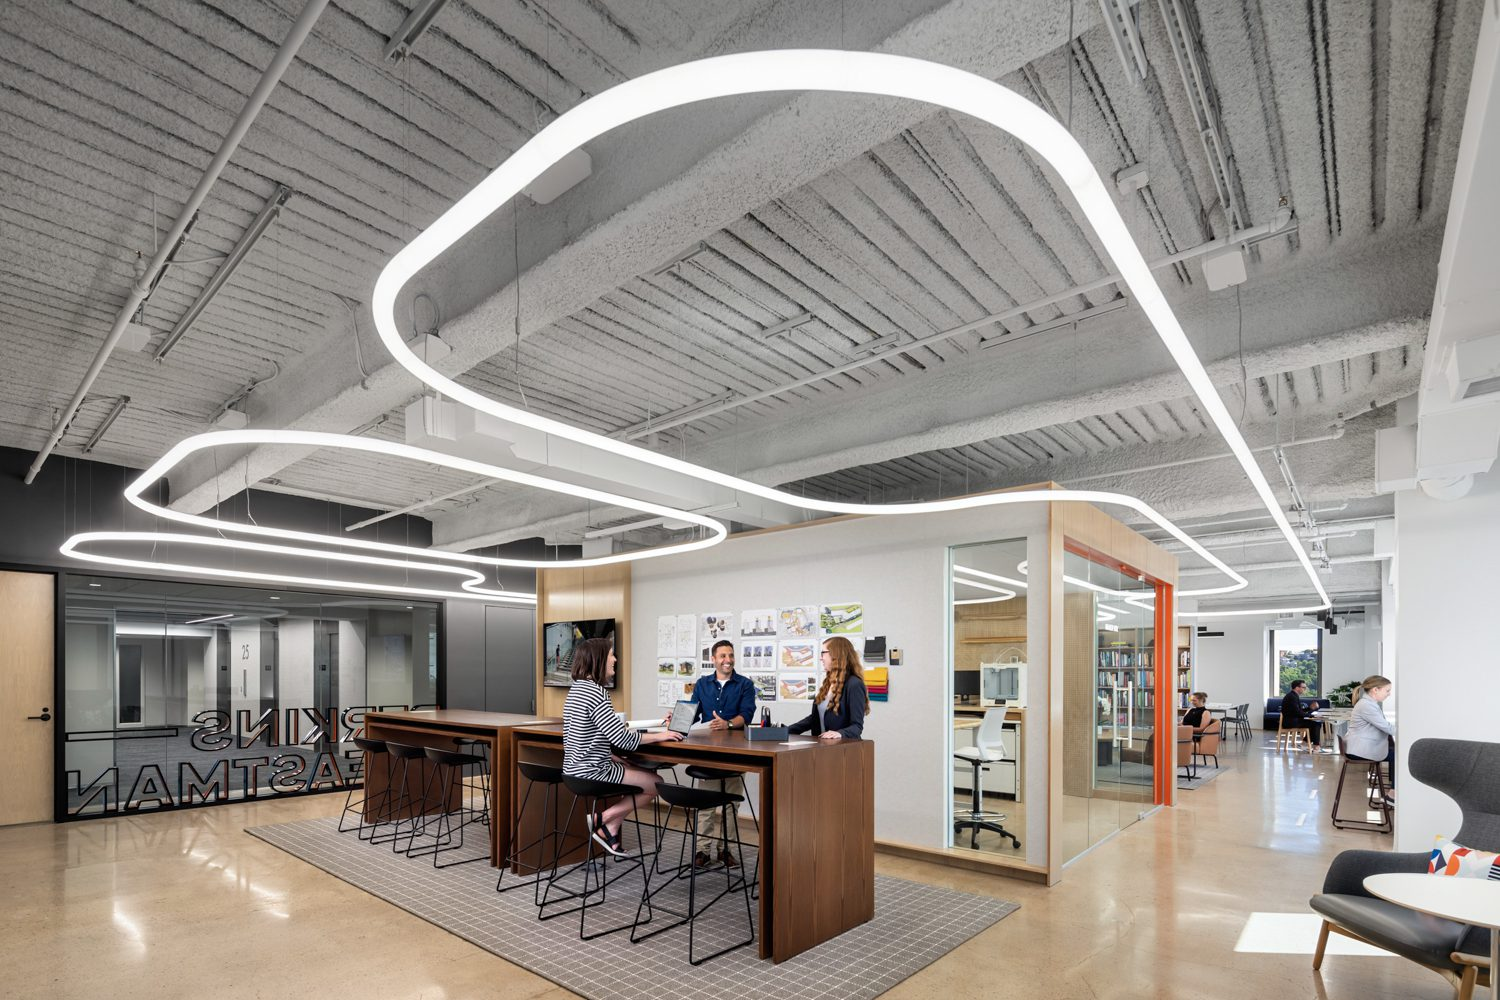 Feature fixtures by Artemide illuminate the workspaces.